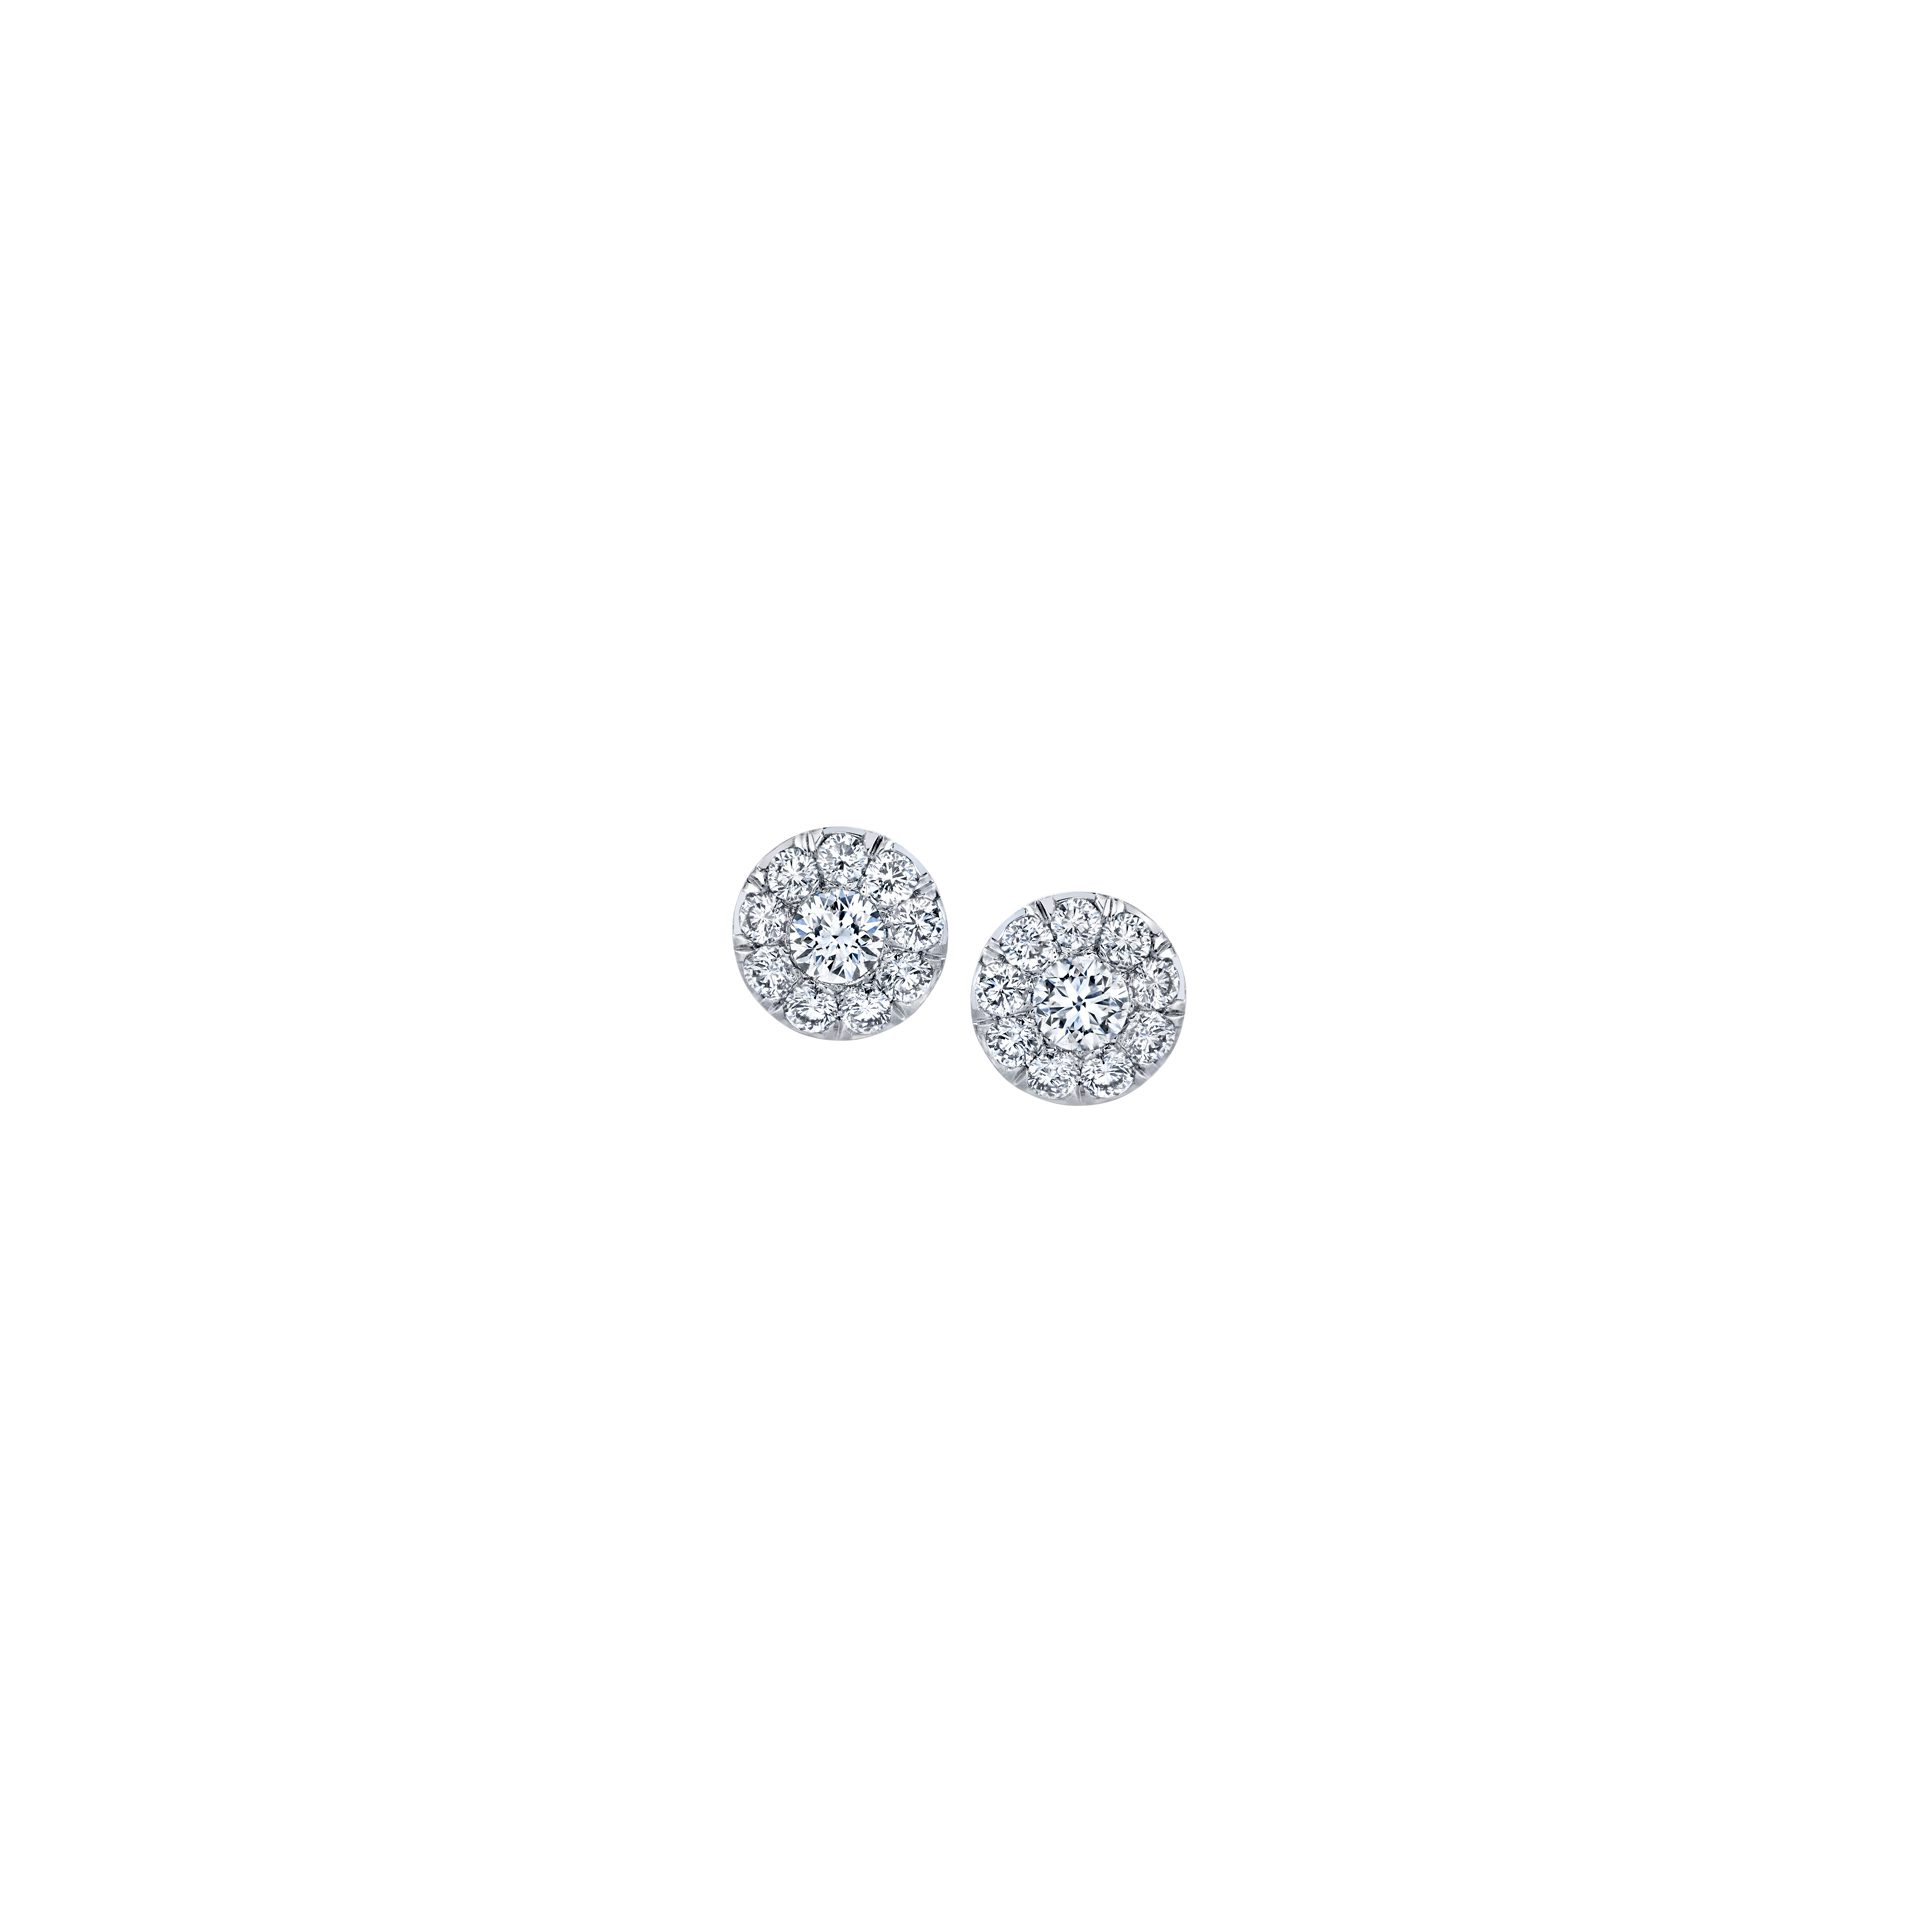 Celine Round Brilliant Seamless Solitaire® Diamond Stud Earrings in 18k White Gold Front View by Oui by Jean Dousset